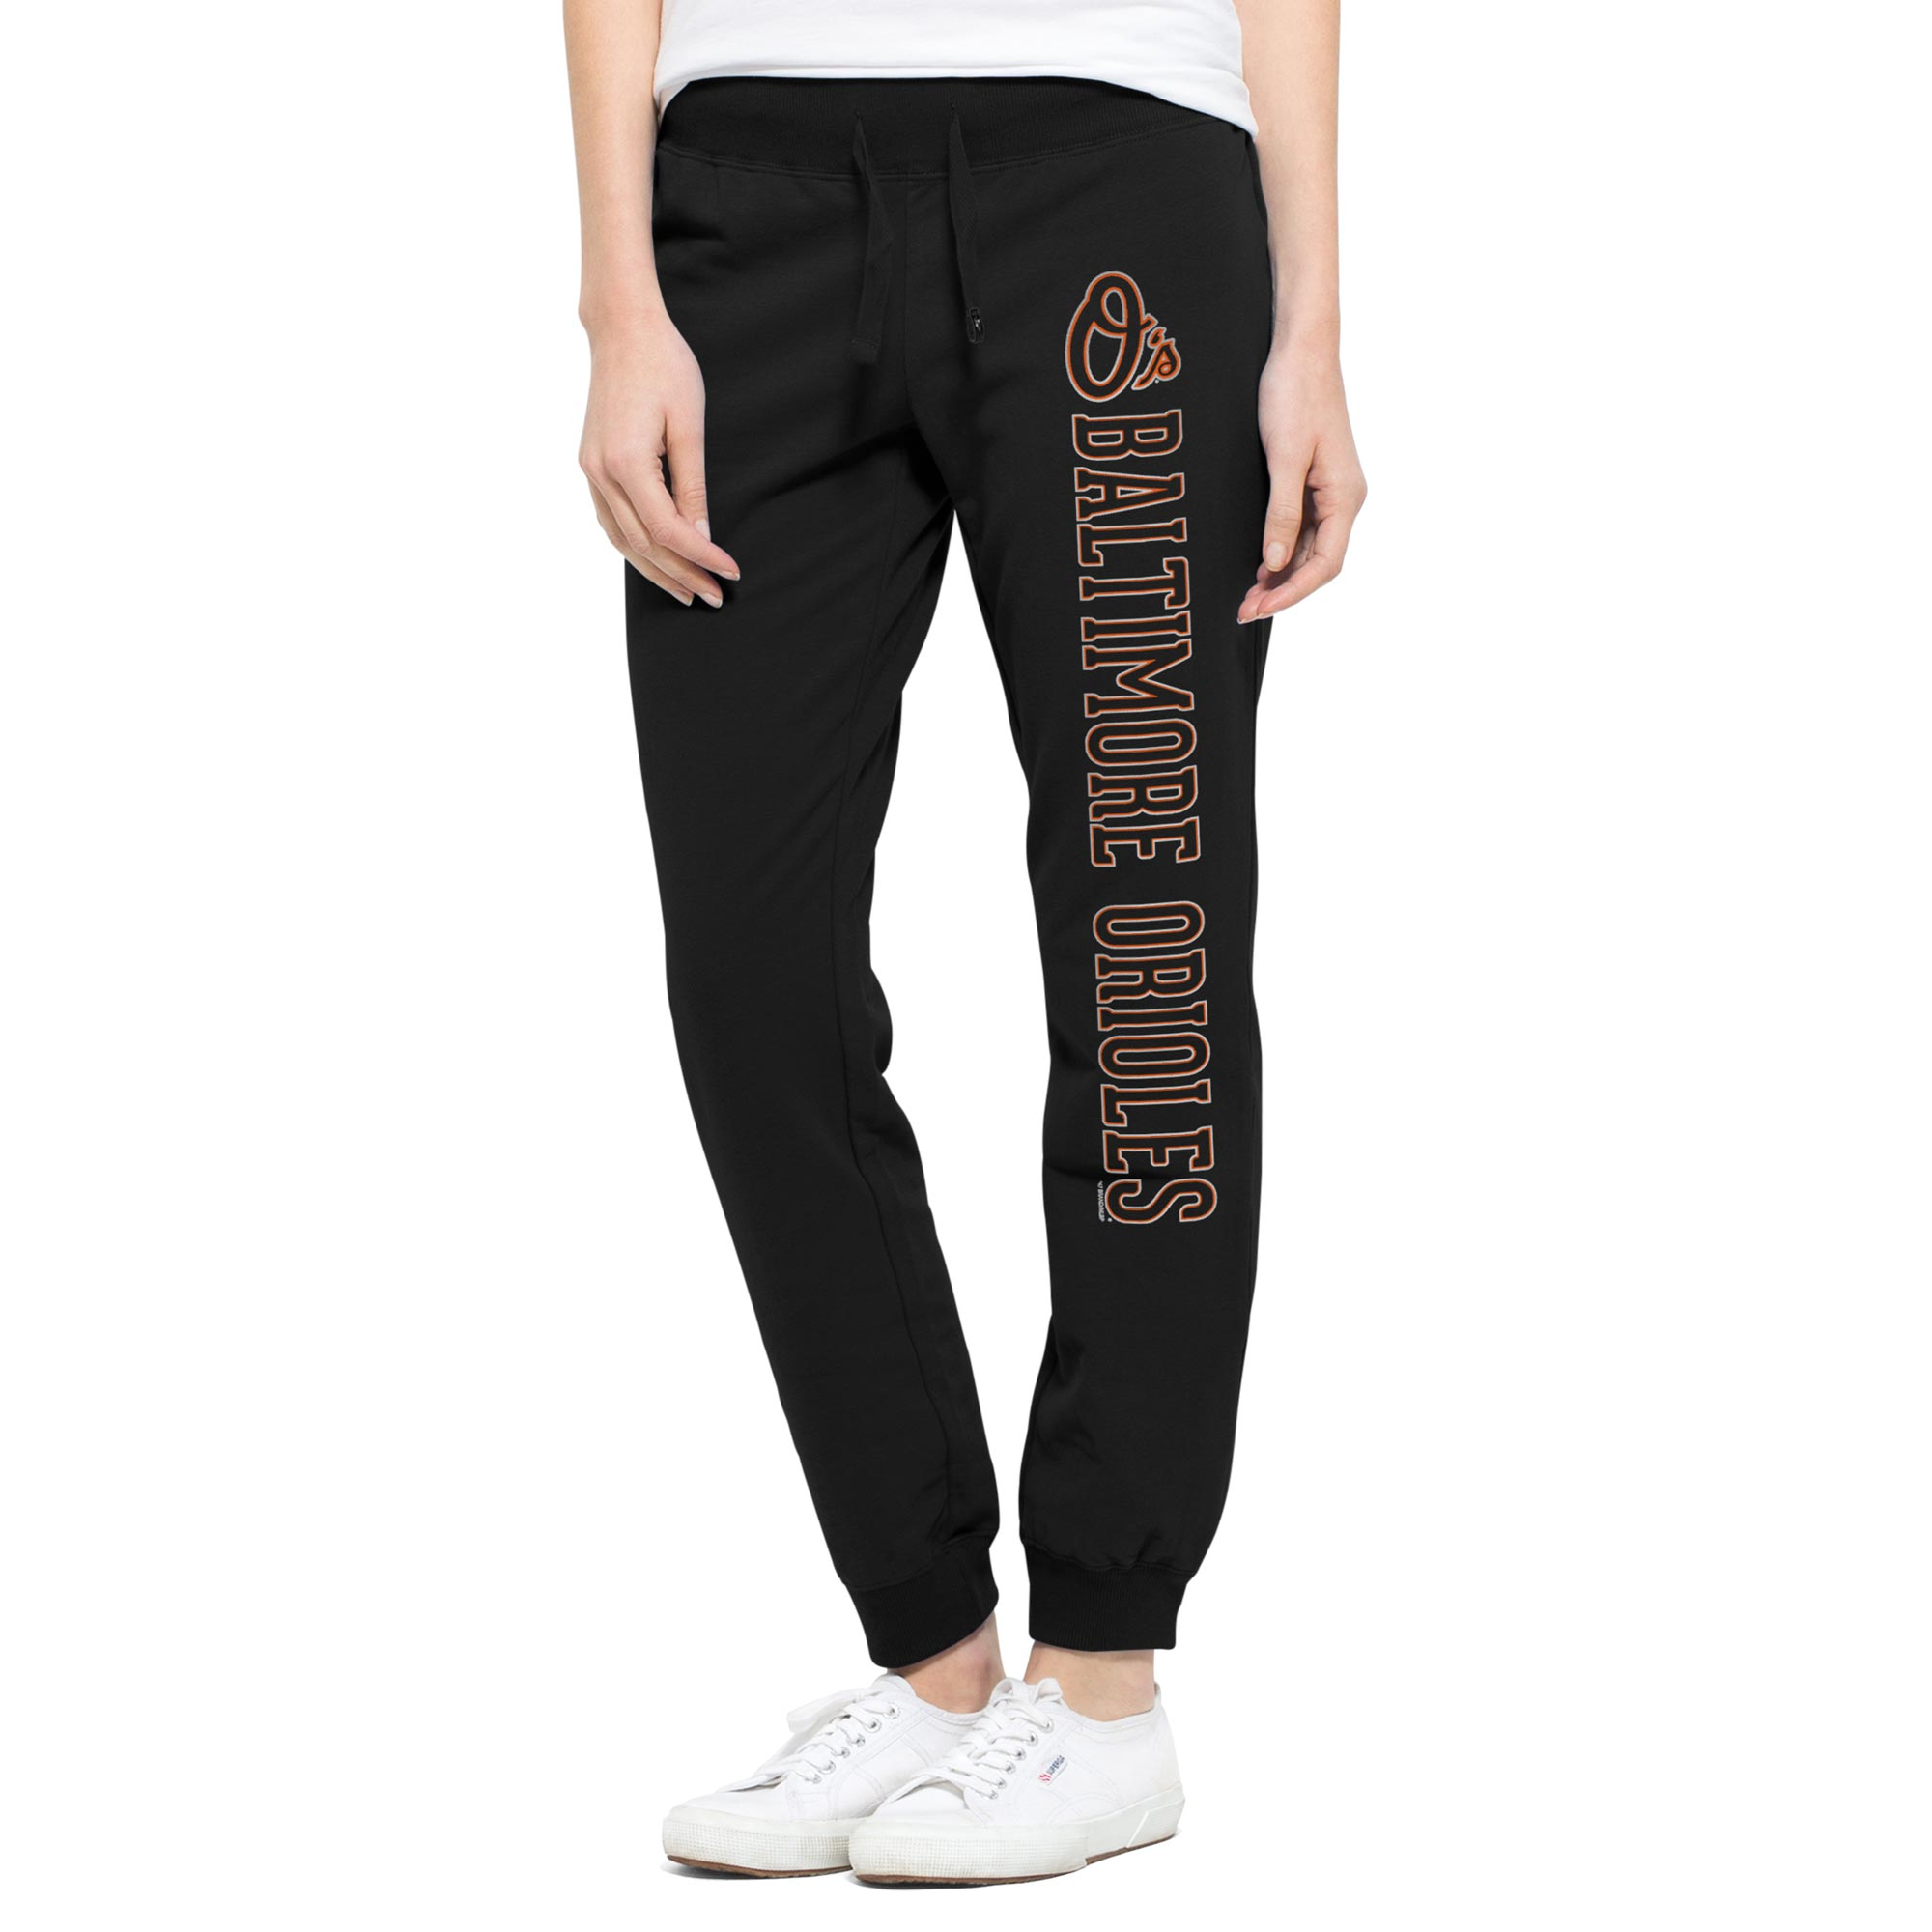 Baltimore Orioles '47 Women's Shimmer Cross Check Jogger Pants - Black